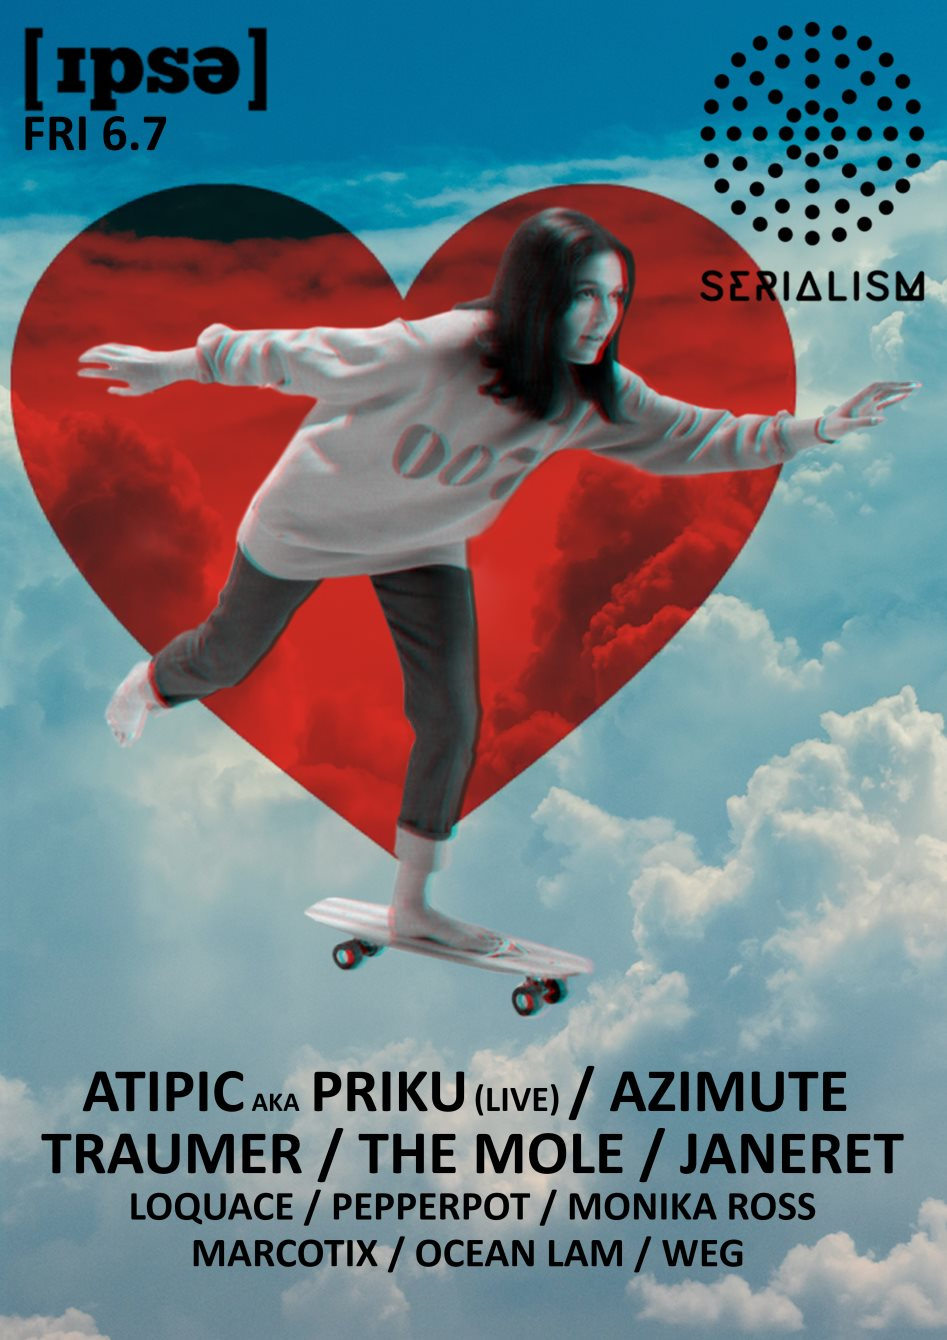 Serialism Night with Traumer, Priku, The Mole a.m - Flyer back